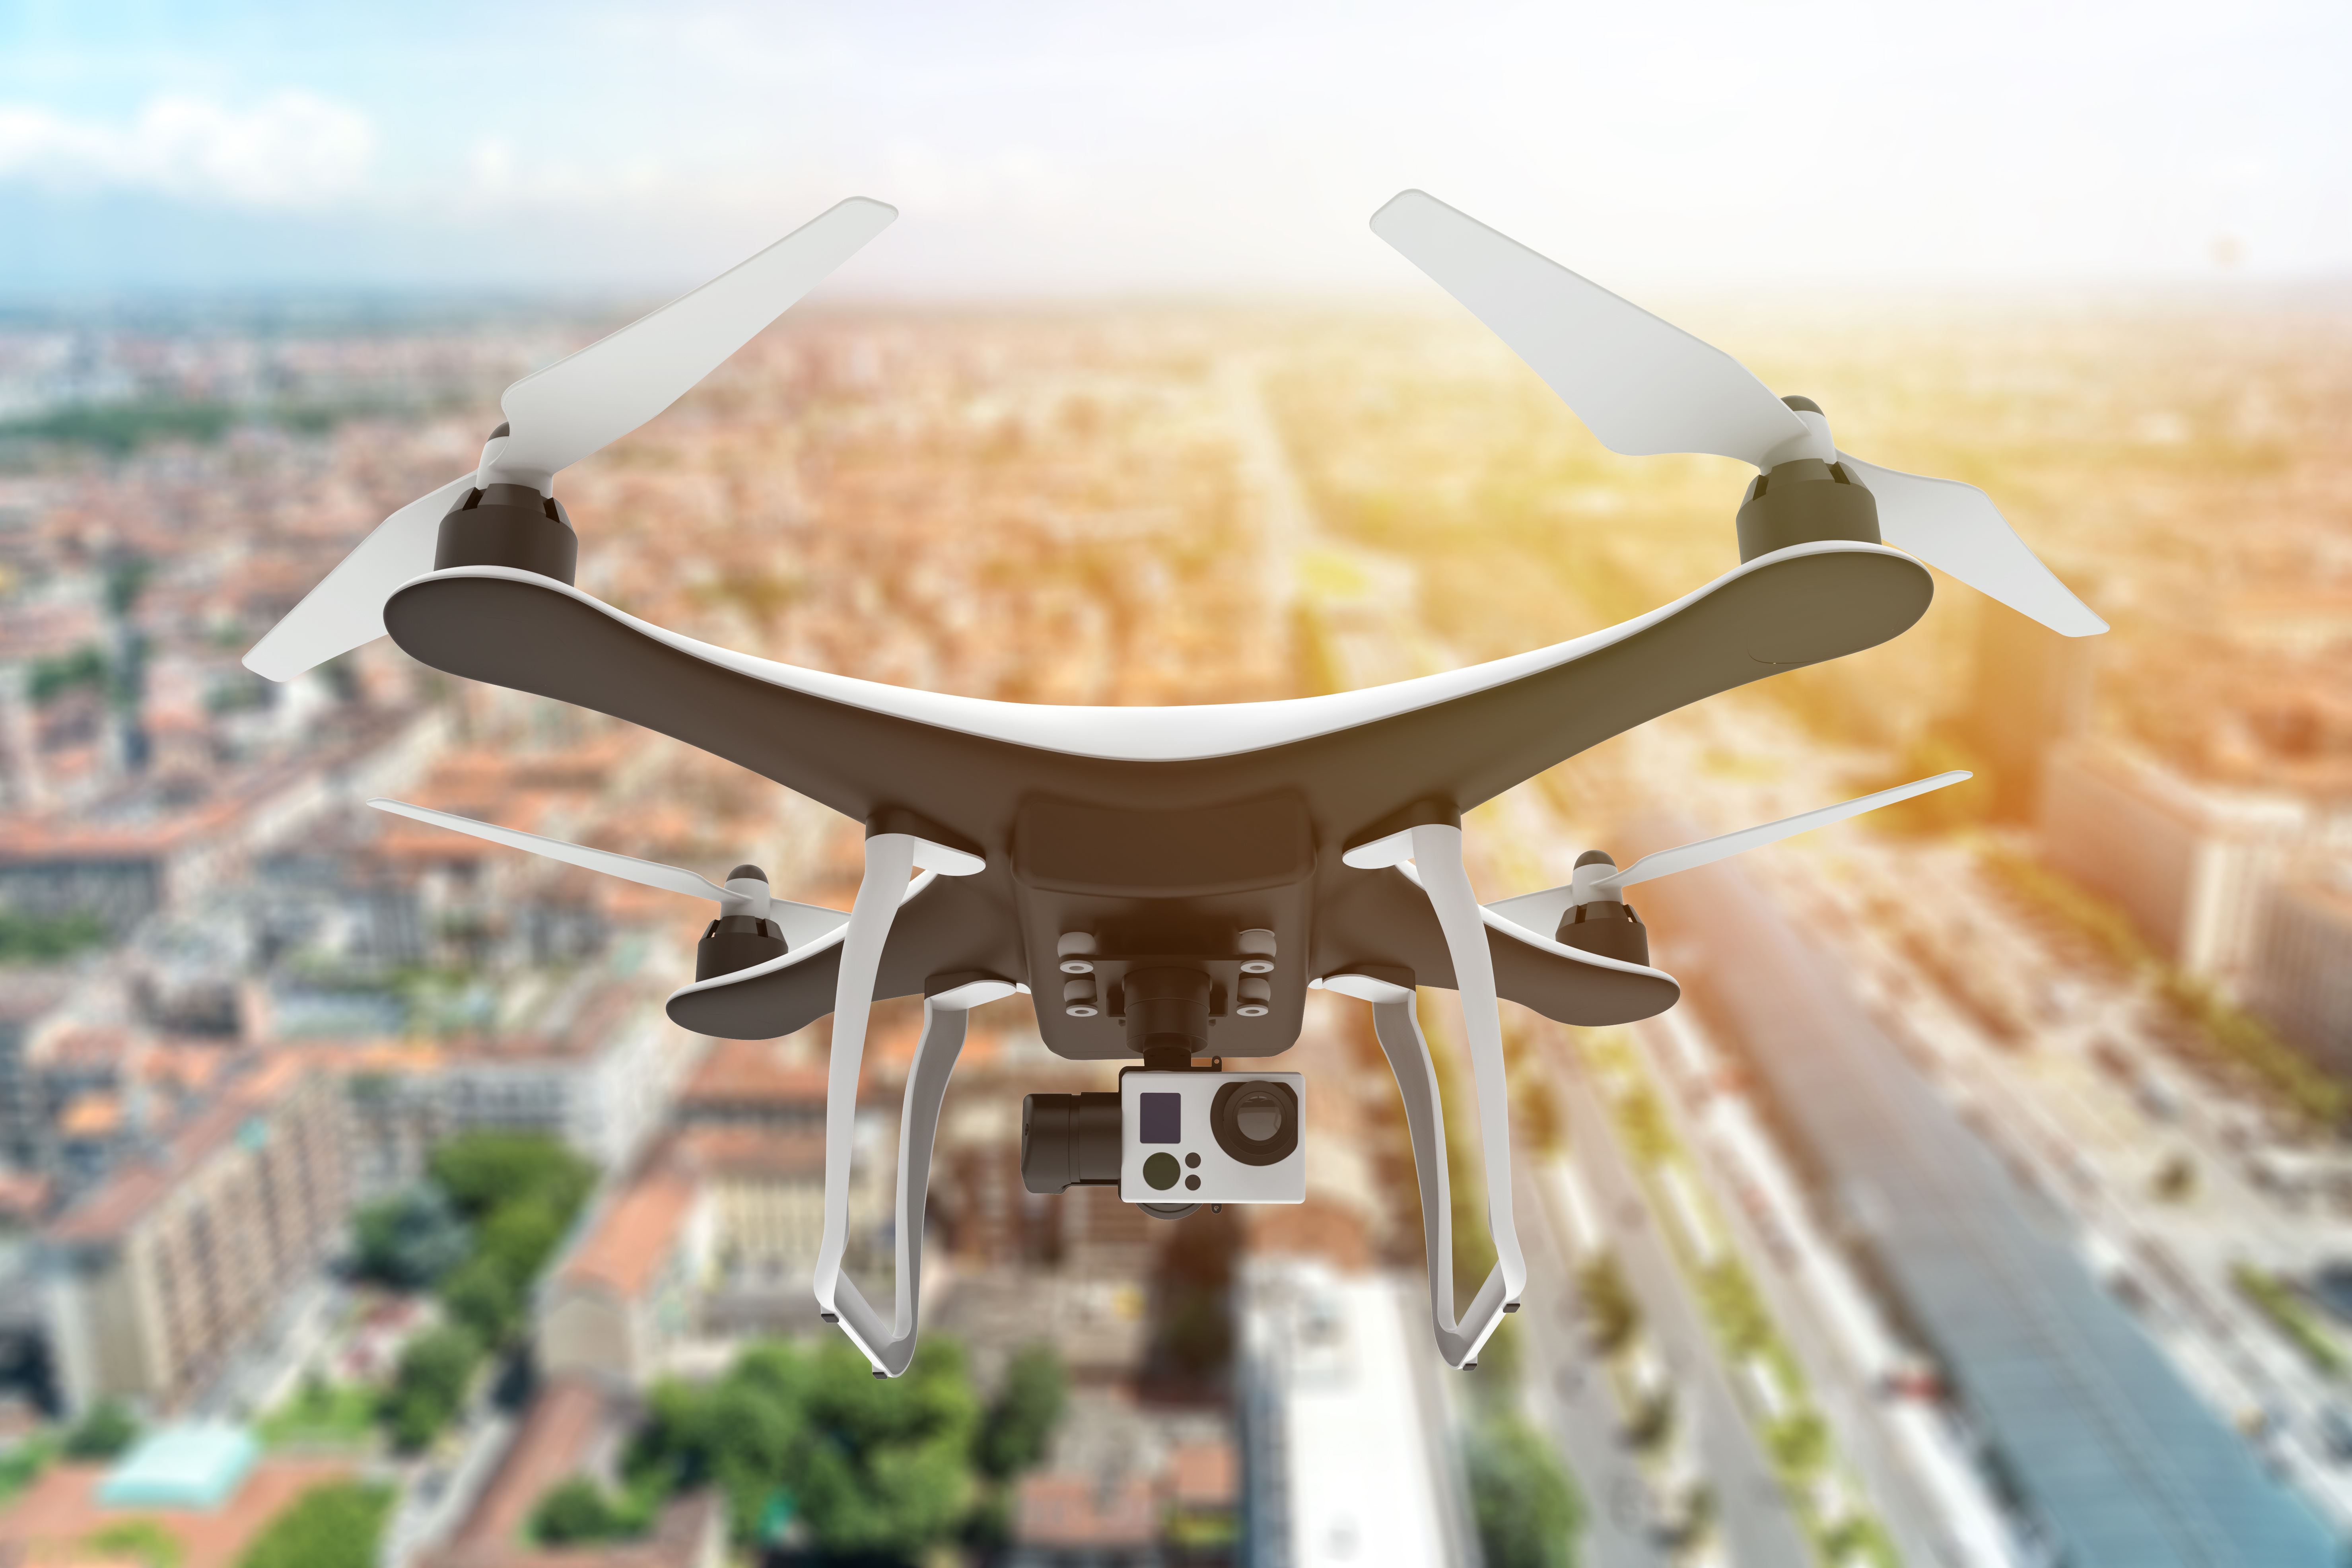 Title image - Drone flying over city